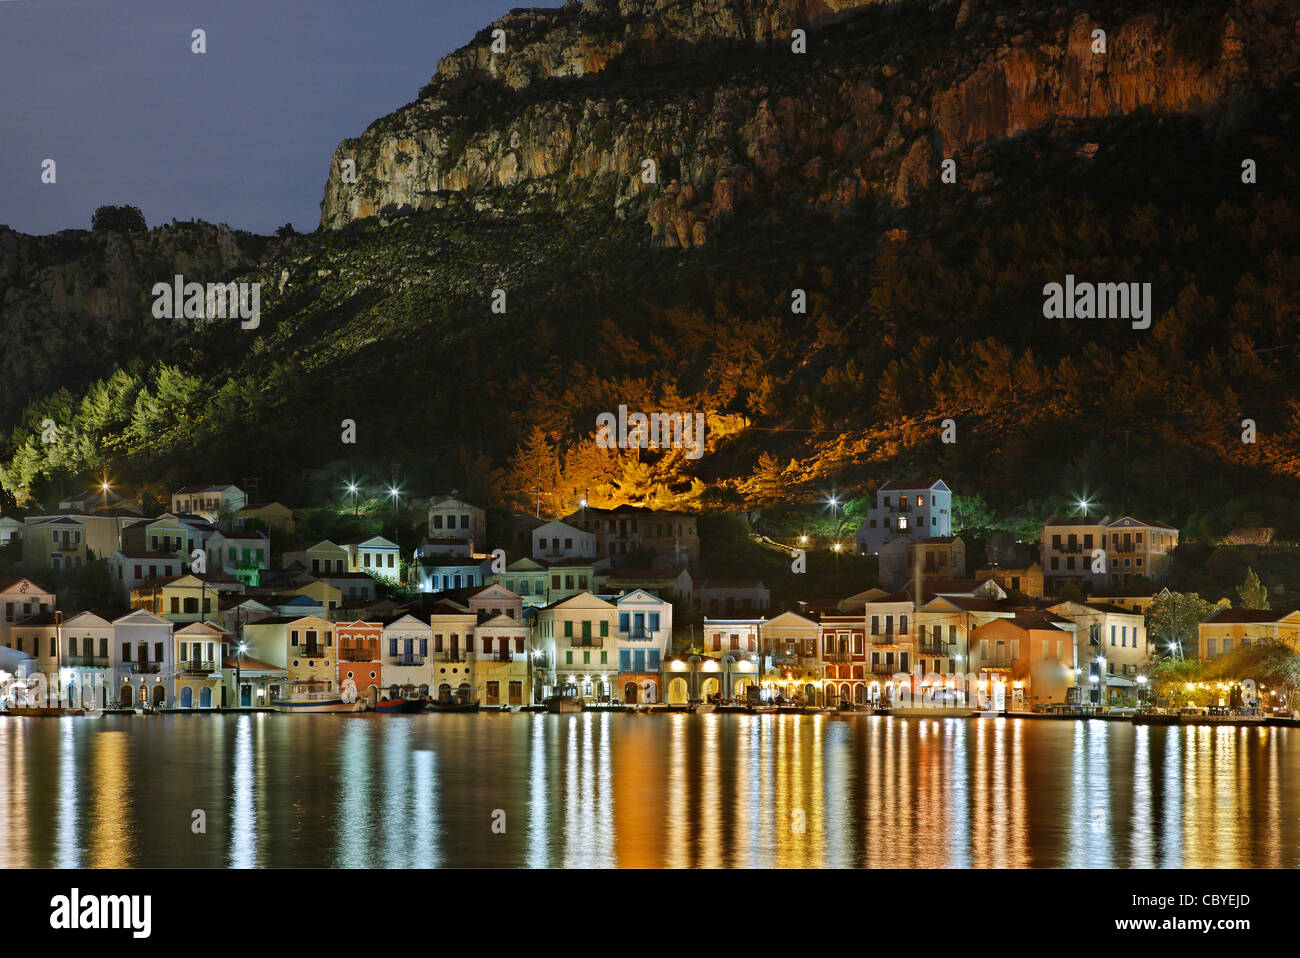 Partial night  view of the picturesque village of Kastellorizo (or 'Meghisti') island, Dodecanese, Greece - Stock Image